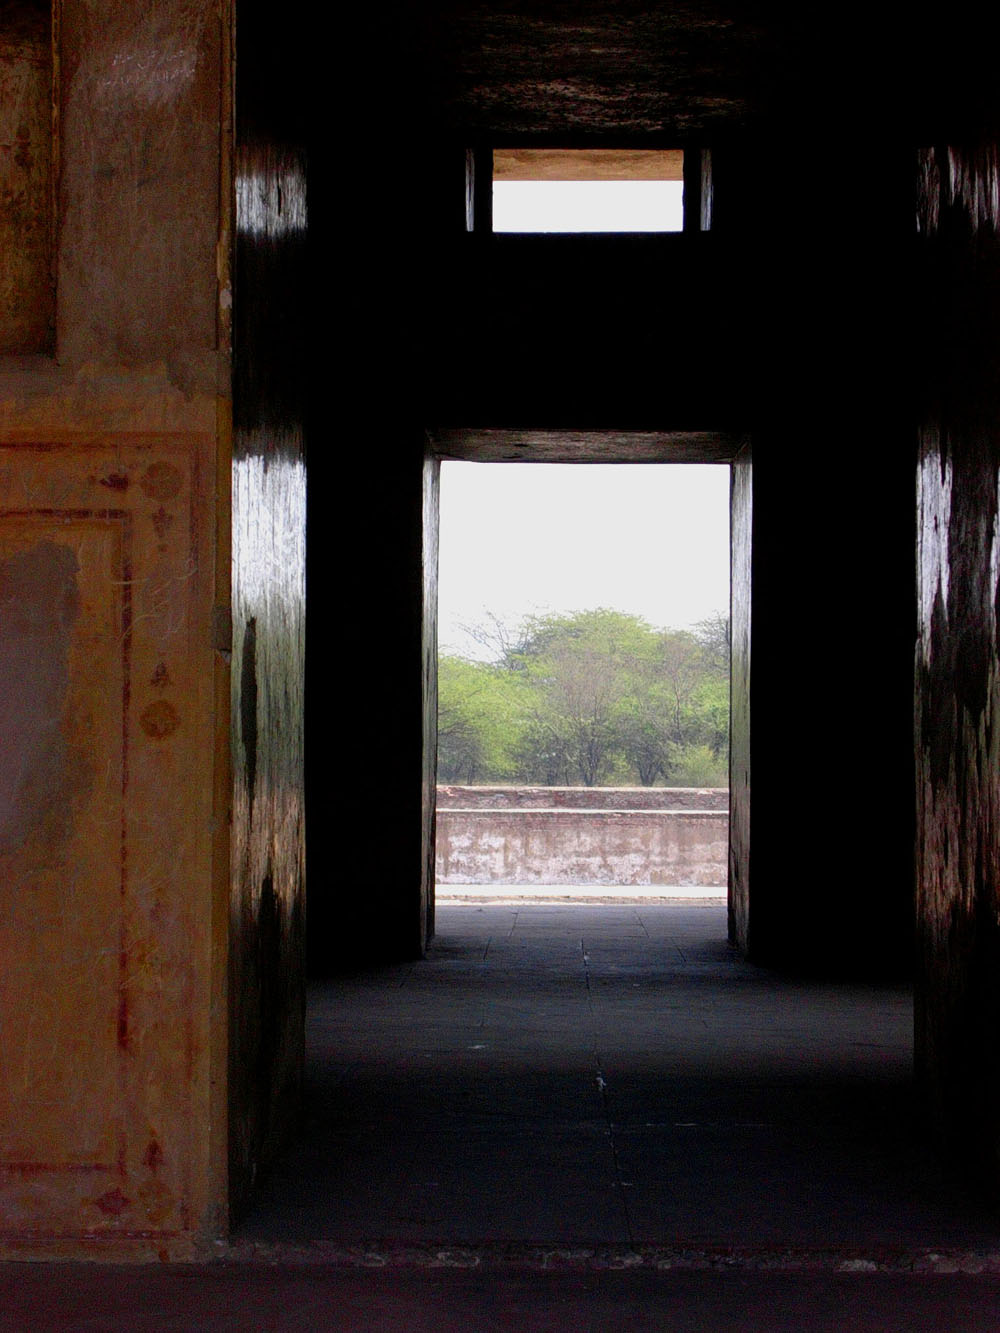 Inside the lake pavilion with a view of protected woodland, Hiran Minar, Sheikapura, Pakistan, 27 January, 2004, photograph by Gordon Brent Ingram